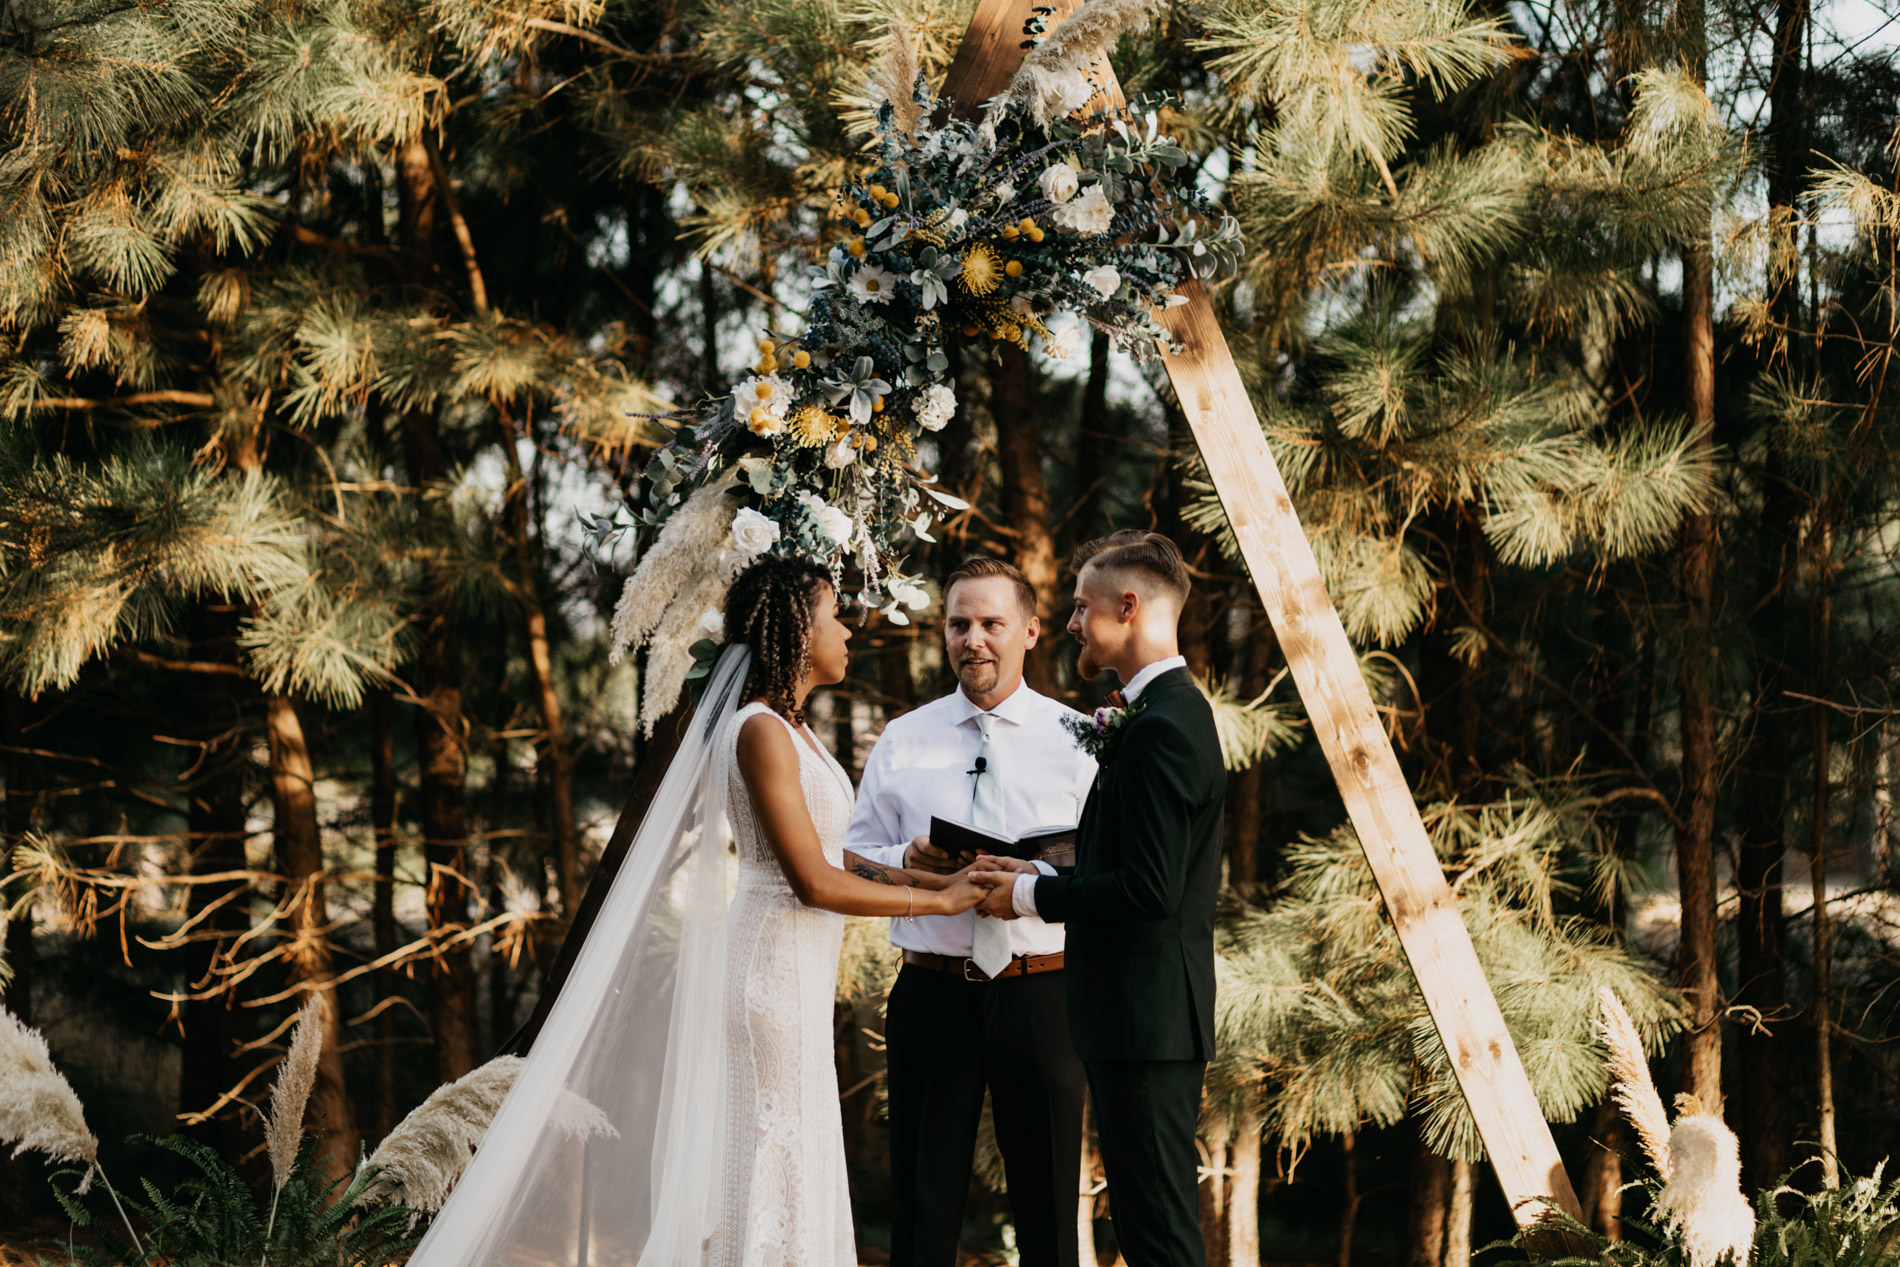 Bride and groom during bohemian wedding ceremony